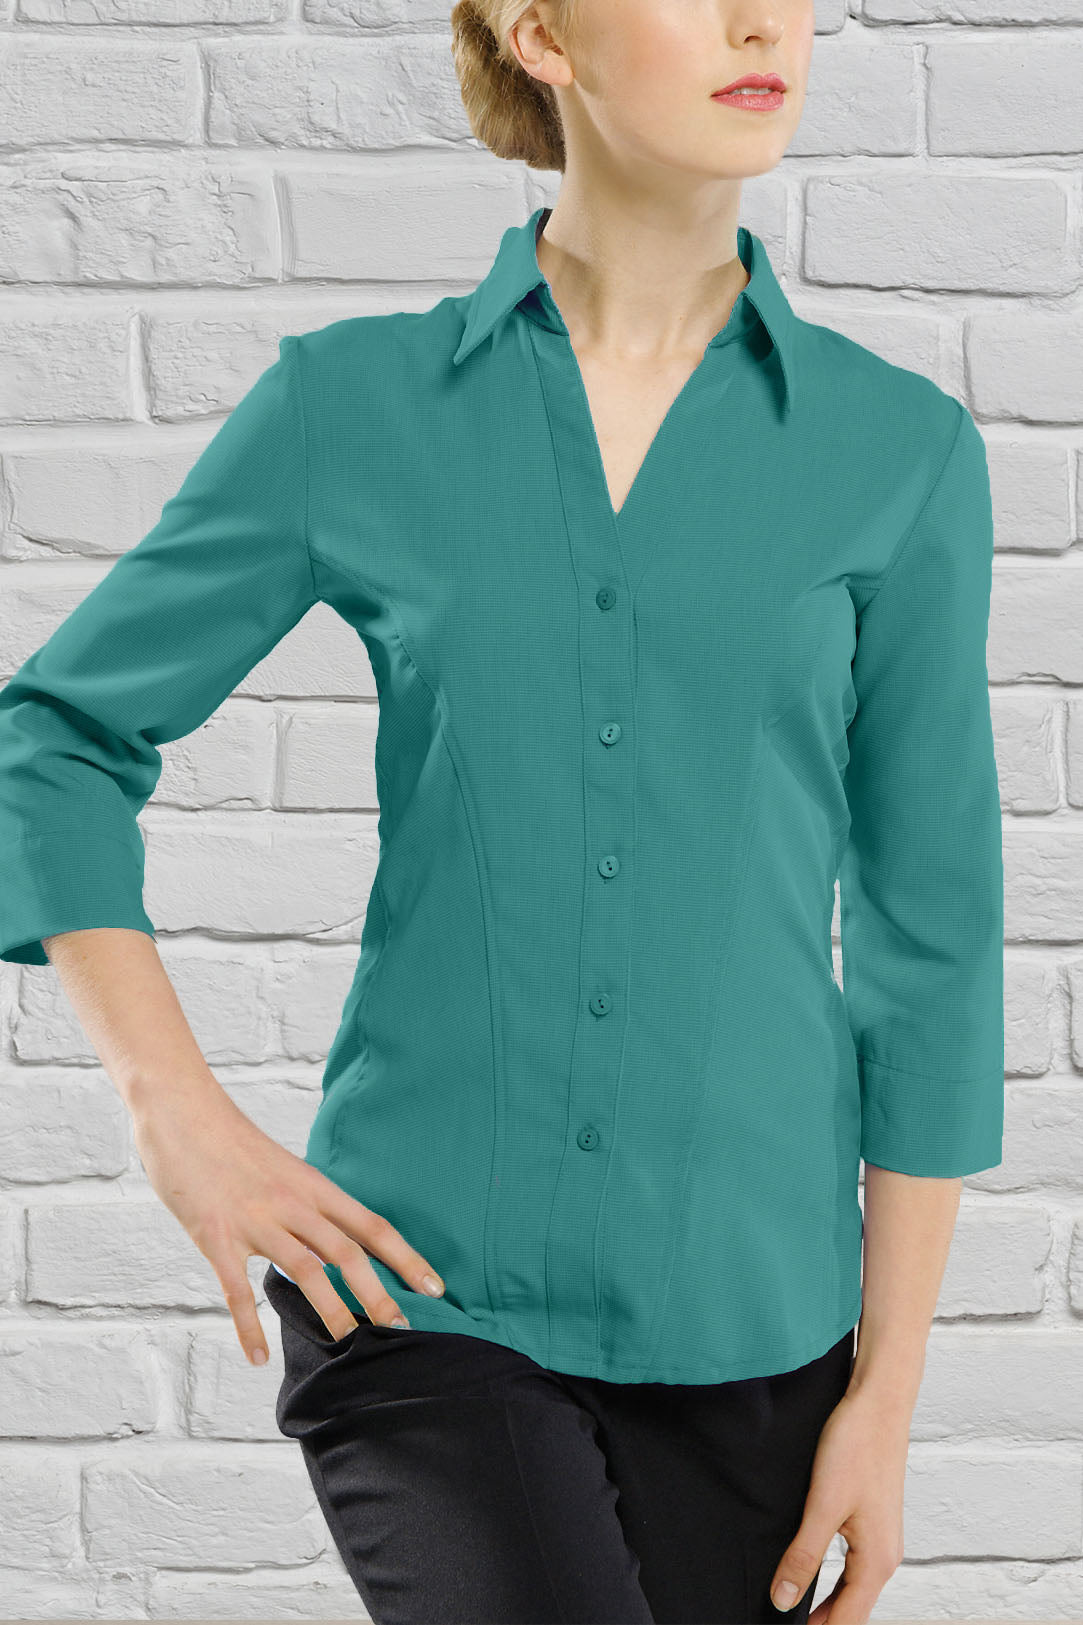 Ladies Teal 3/4 Sleeve Blouse